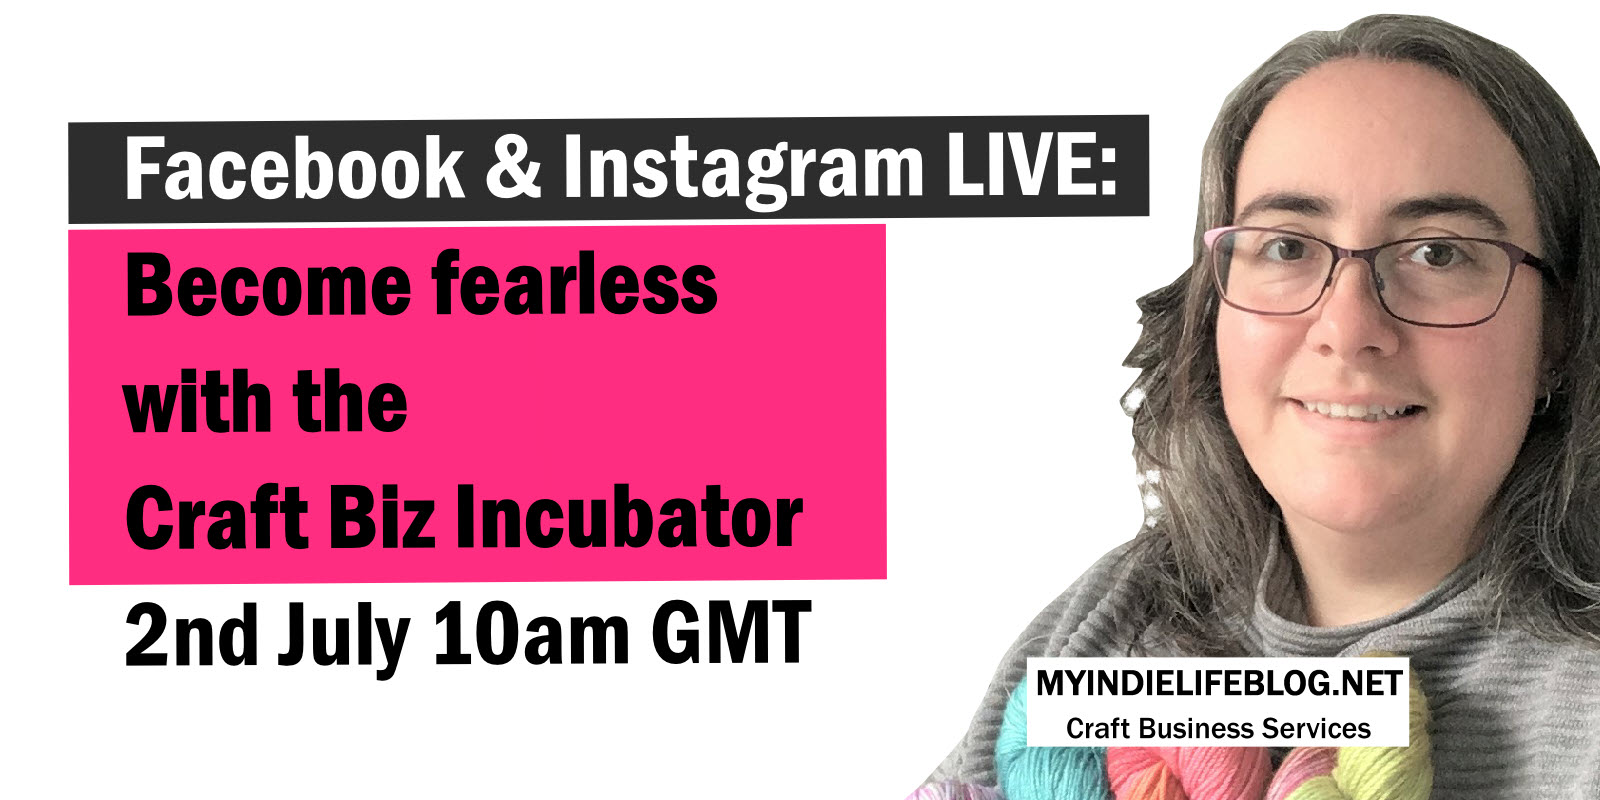 Become fearless with the Craft Biz Incubator.